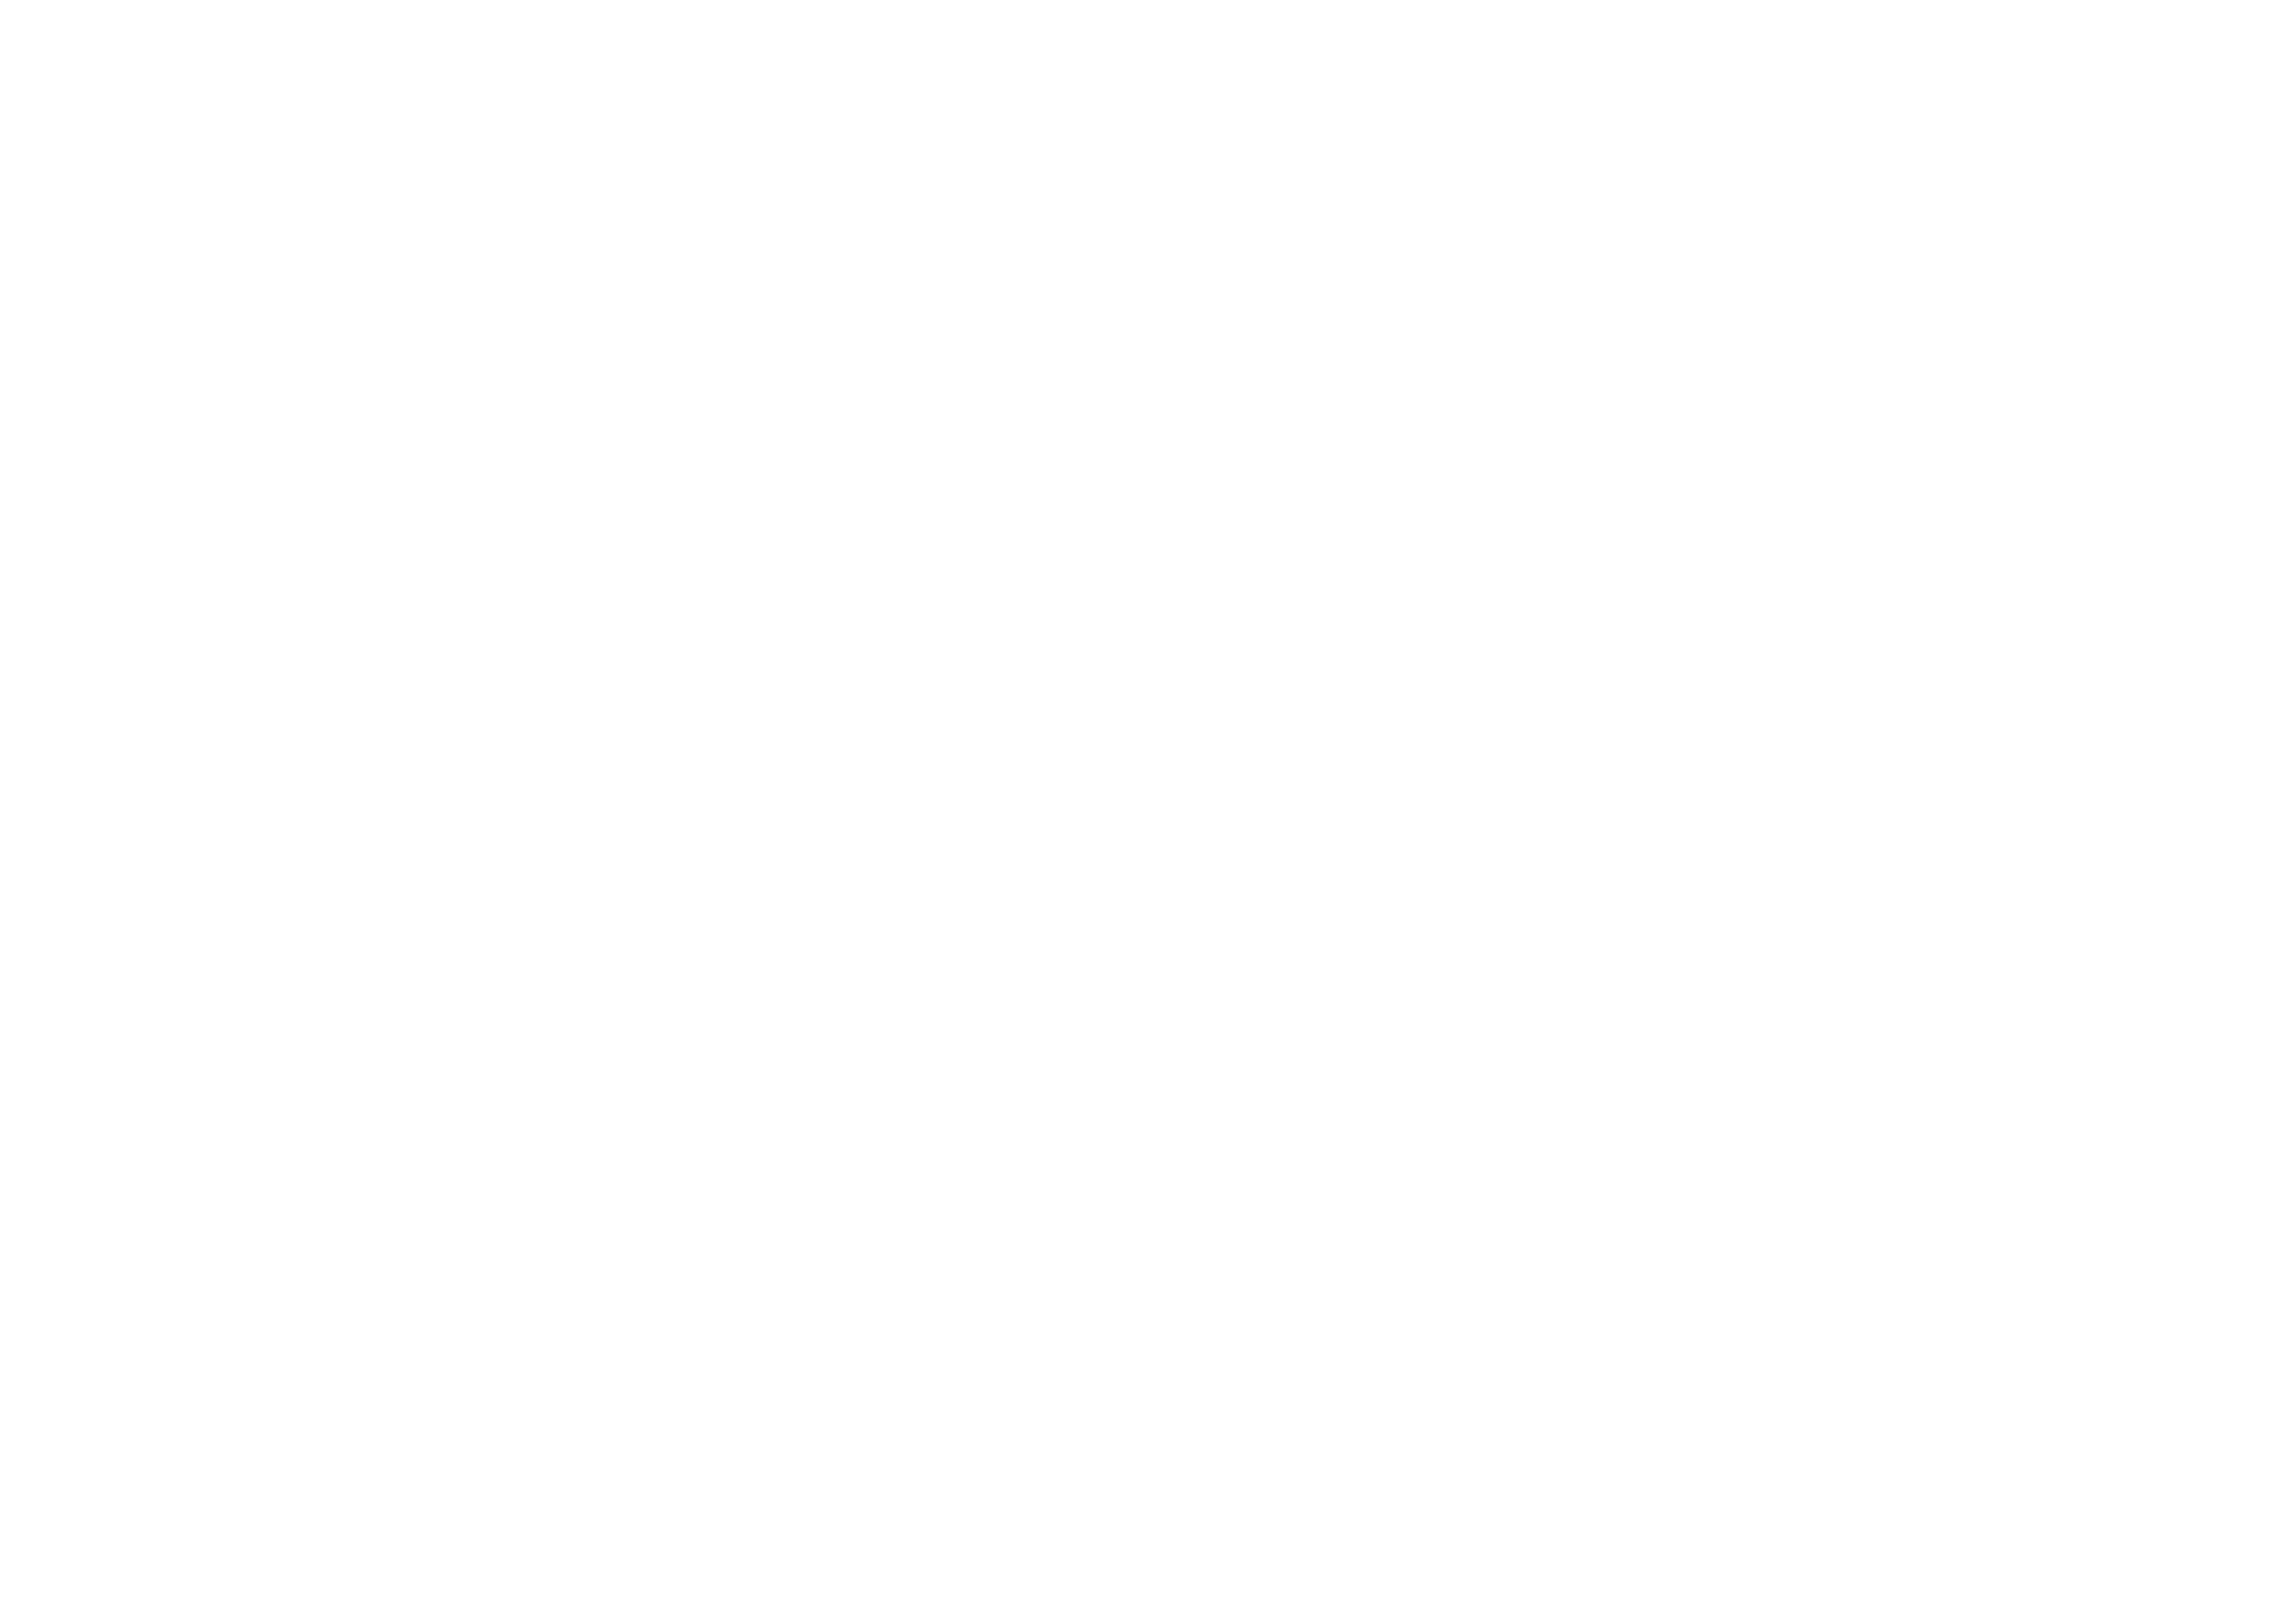 Stage Valley